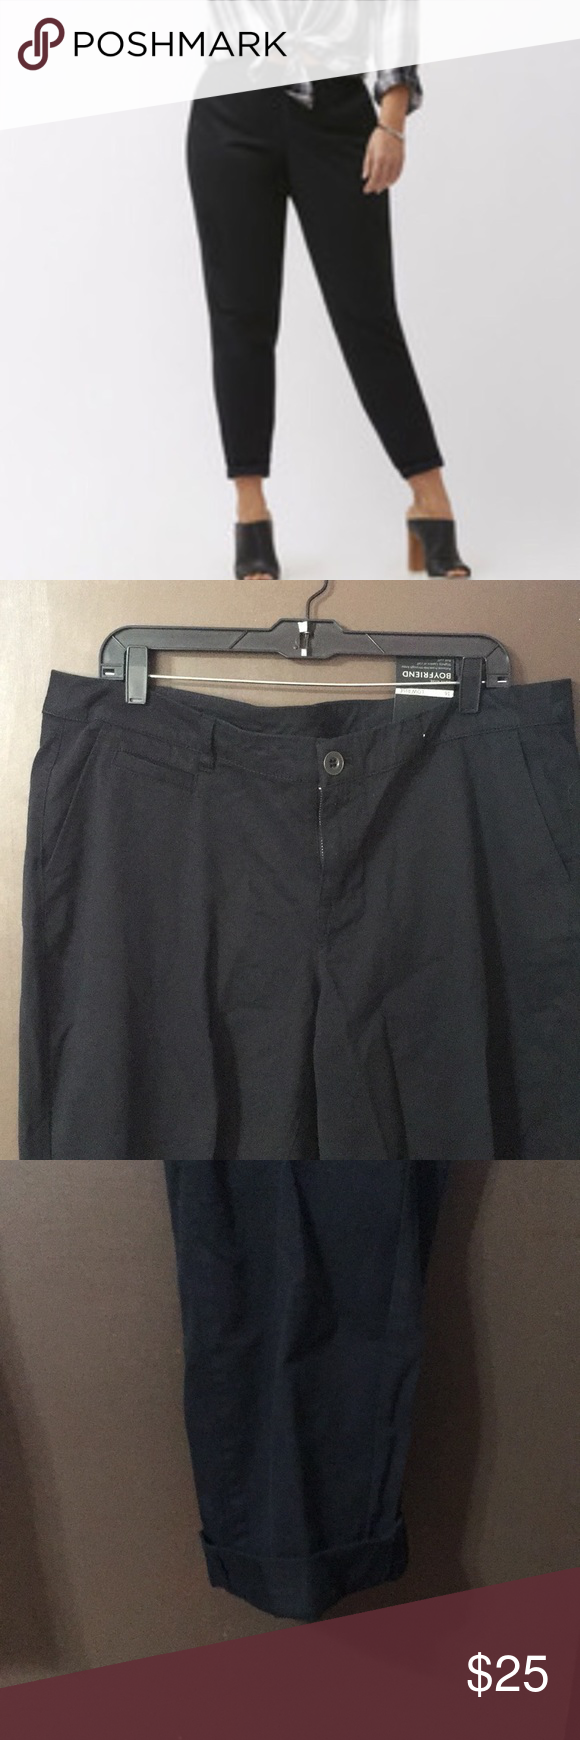 e3c3f65b64cb8 NWT Lane Bryant boyfriend chino NWT Lane Bryant black boyfriend chino pants.  Relaxed from hip